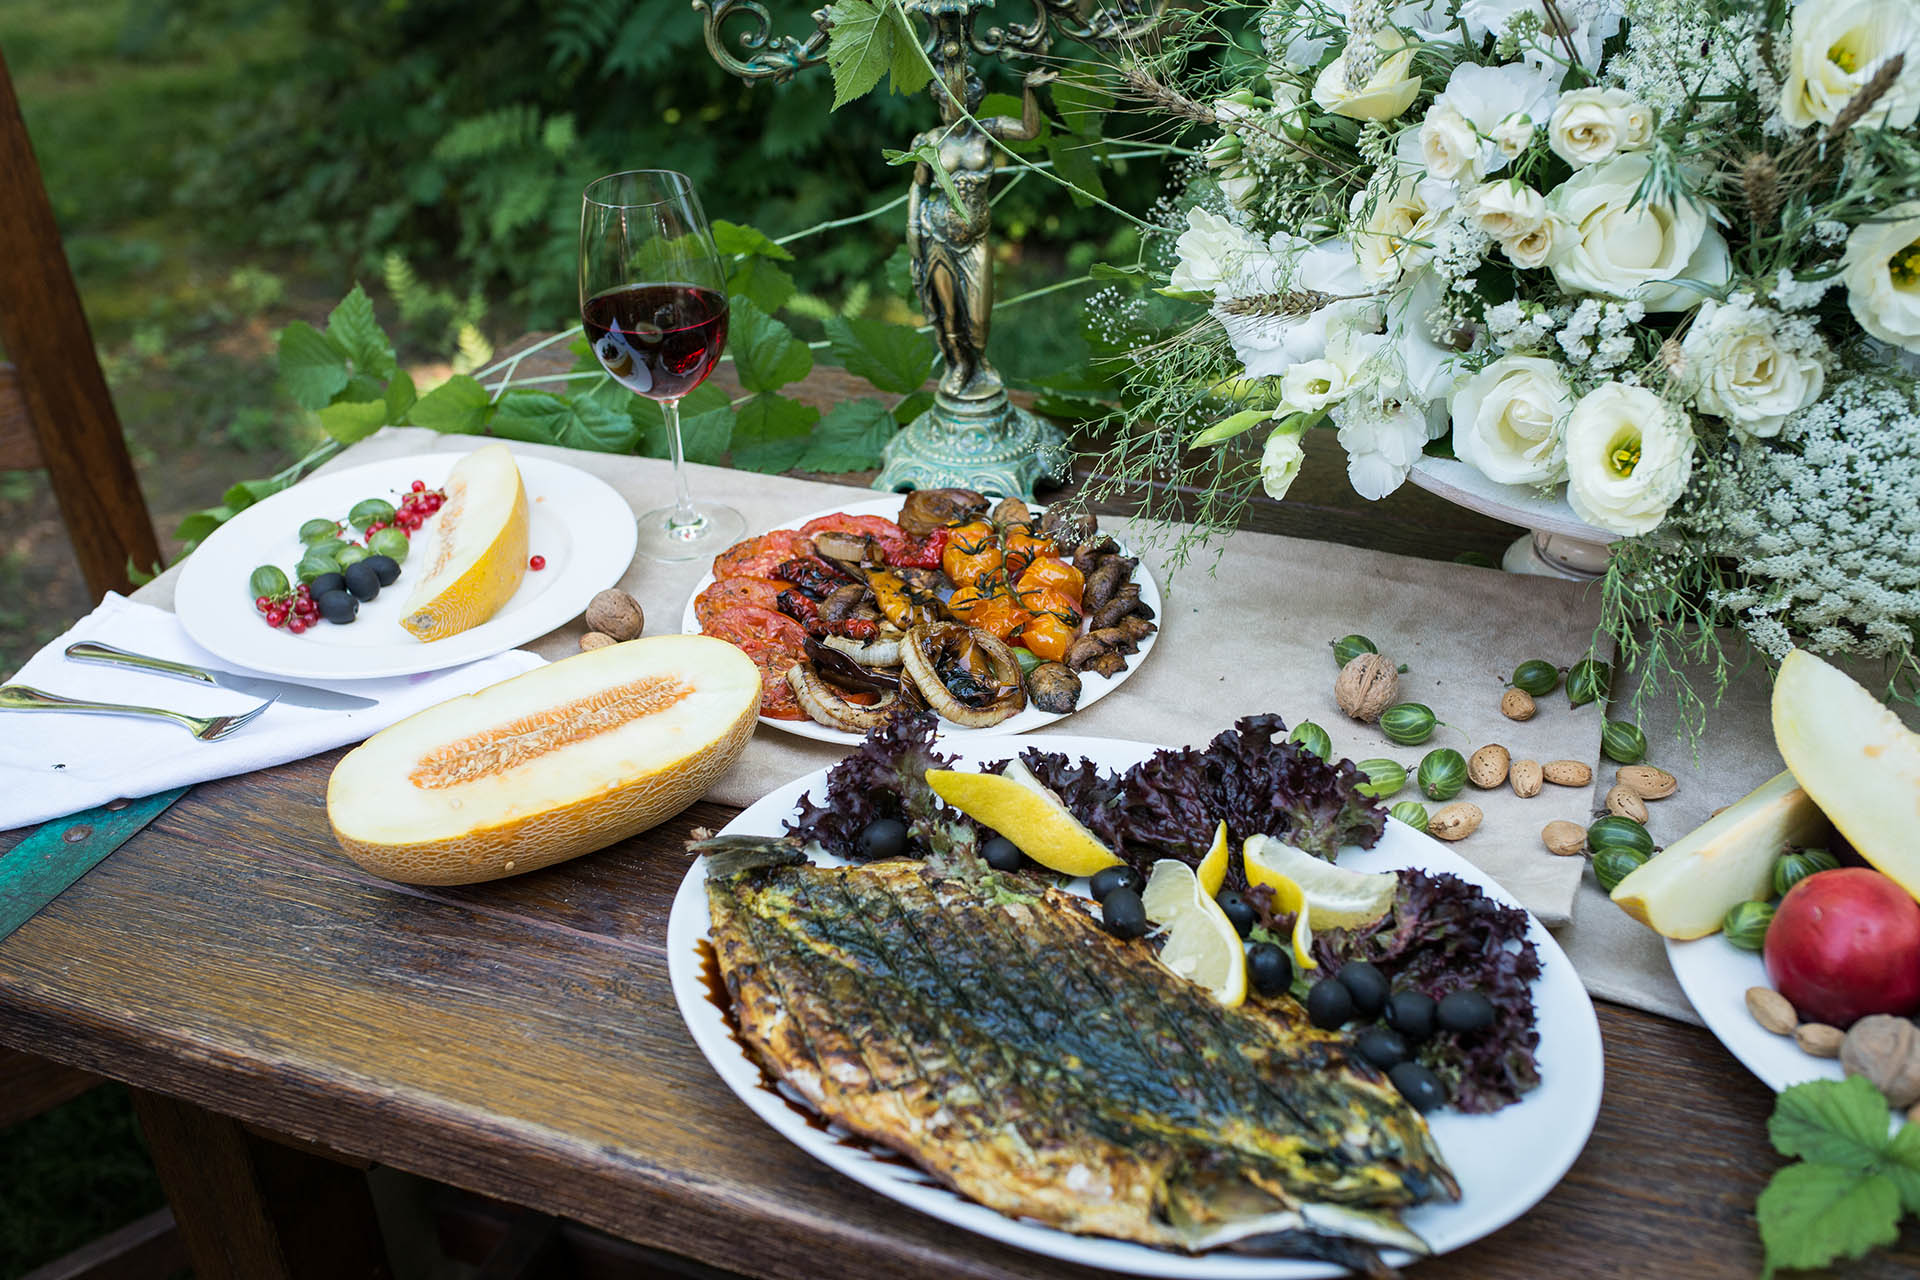 Armenian spread of grilled vegetables and fish with melon, red currants, currant and wine / Getty